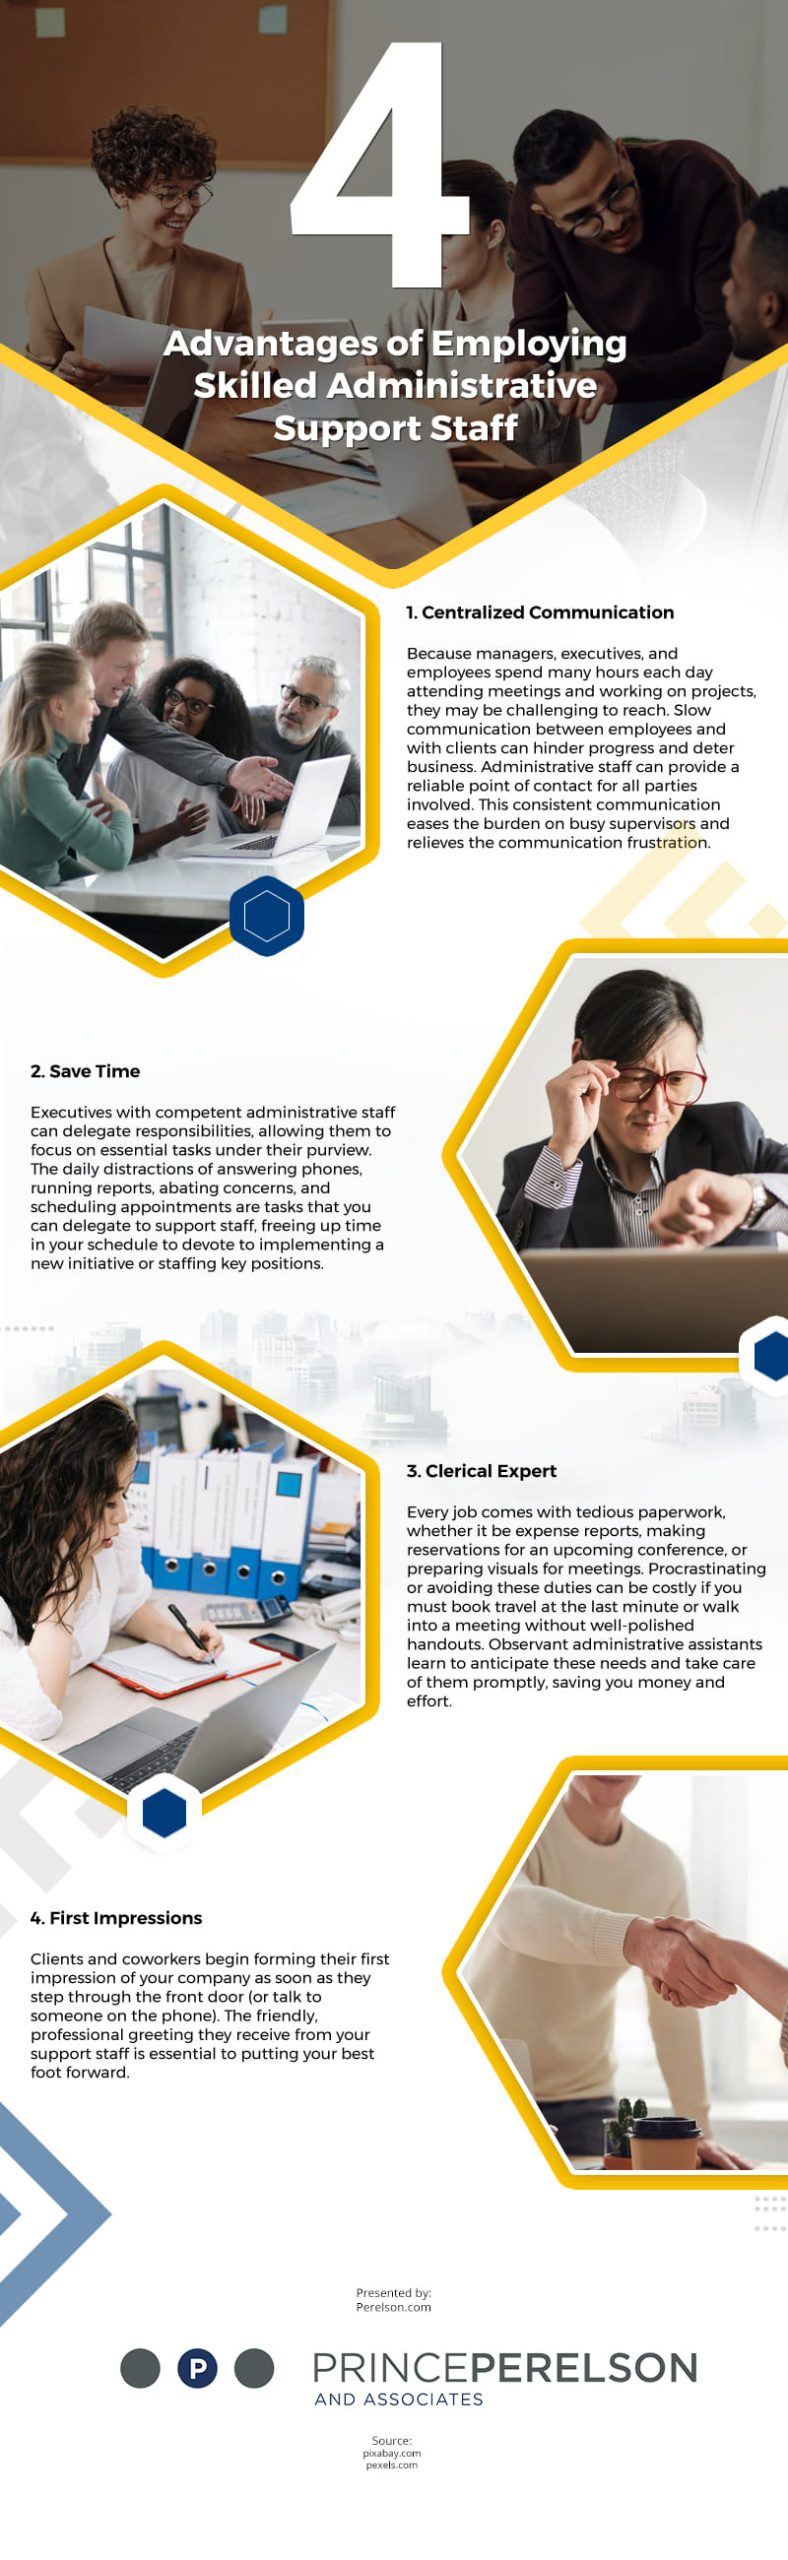 4 Advantages of Employing Skilled Administrative Support Staff Infographic